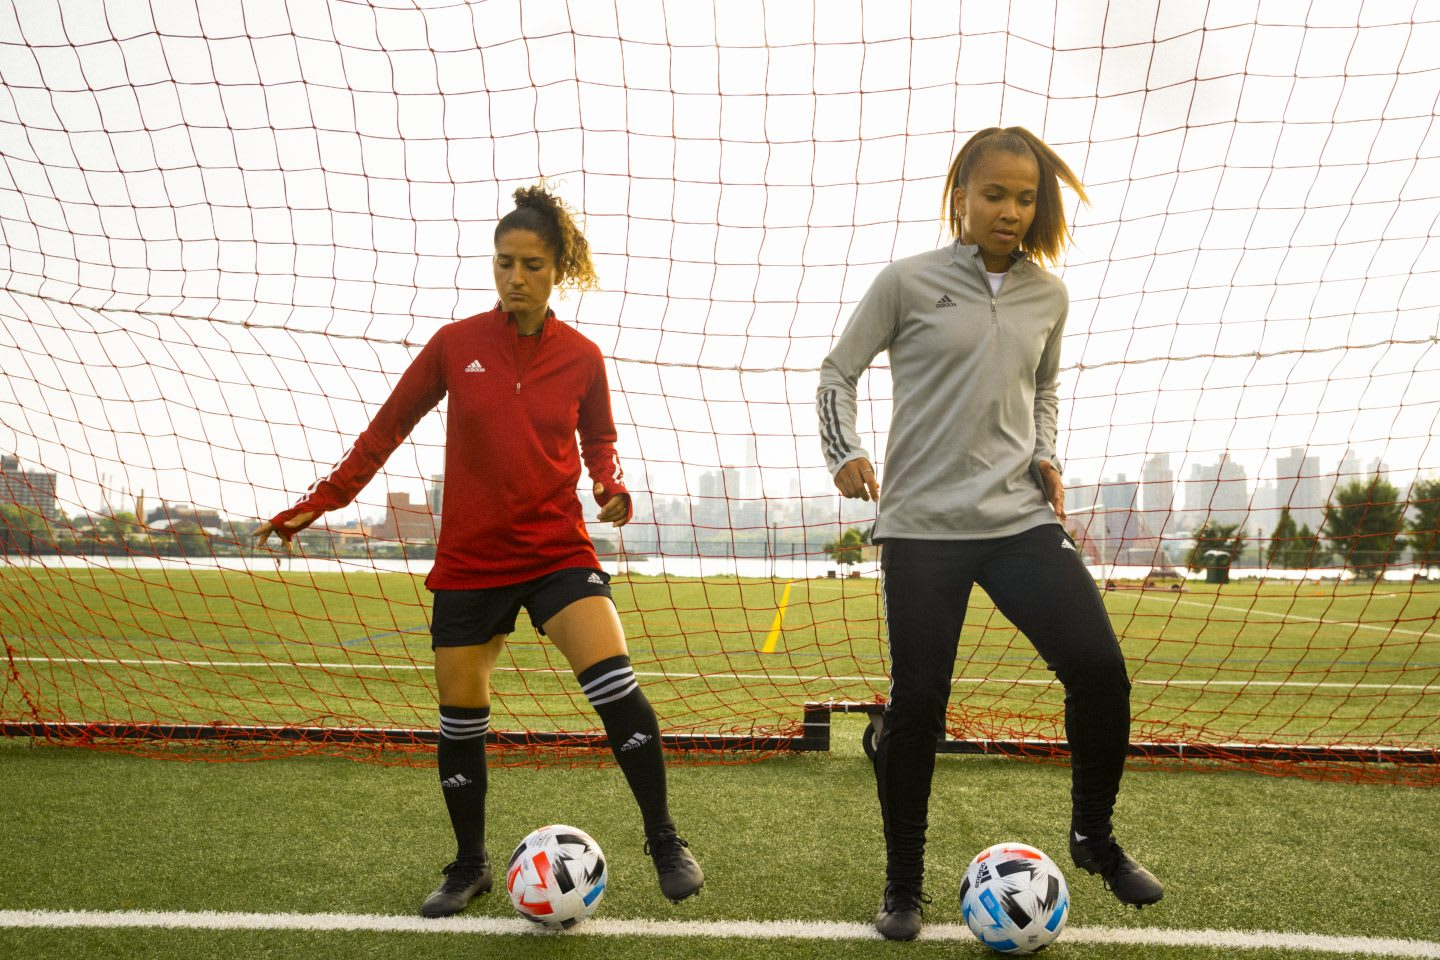 Two women dribbling footballs on a field in front of a goal, sports, football, soccer, exercise, fitness, adidas